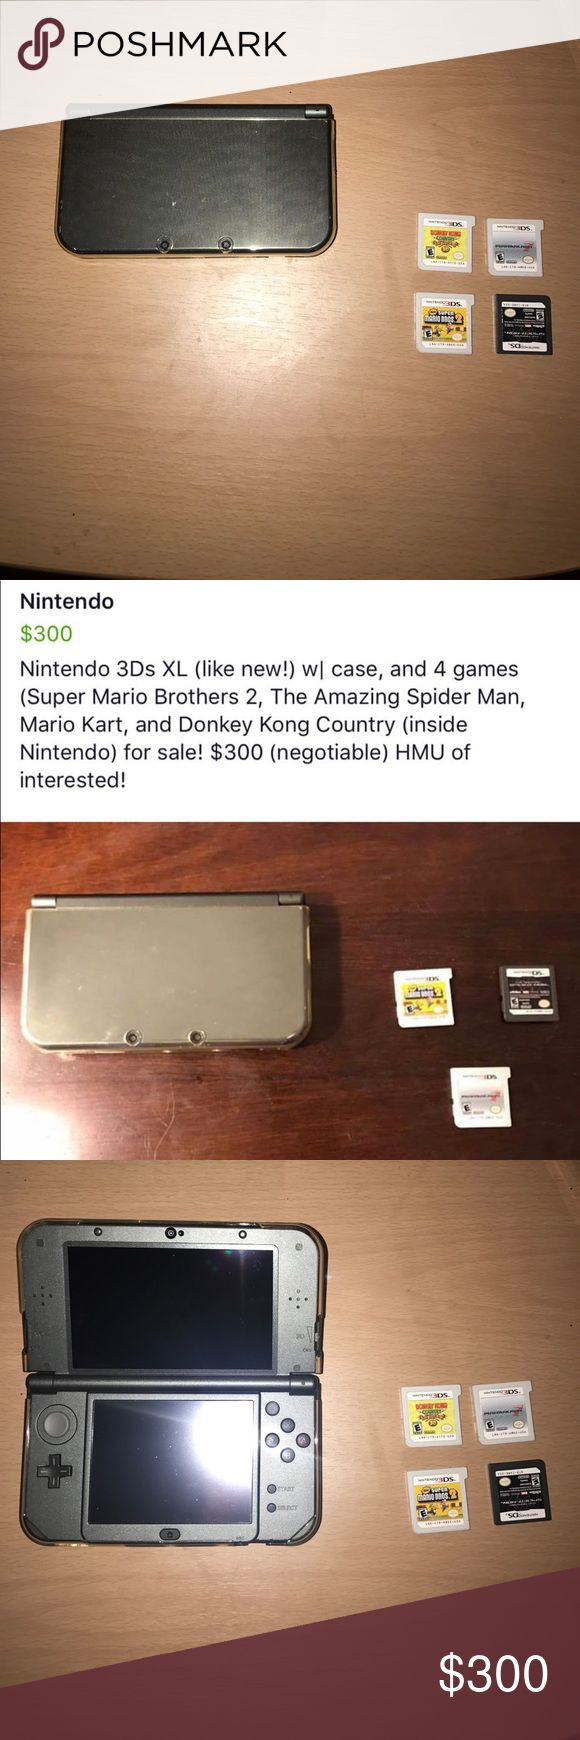 Nintendo 3Ds XL Mint condition Nintendo 3Ds XL with cover and 4 games (Super Mario Bros 2, Donkey Kong Country Returns, Mario Kart 7, & The Amazing Spider-Man) with charger! Nintendo Other